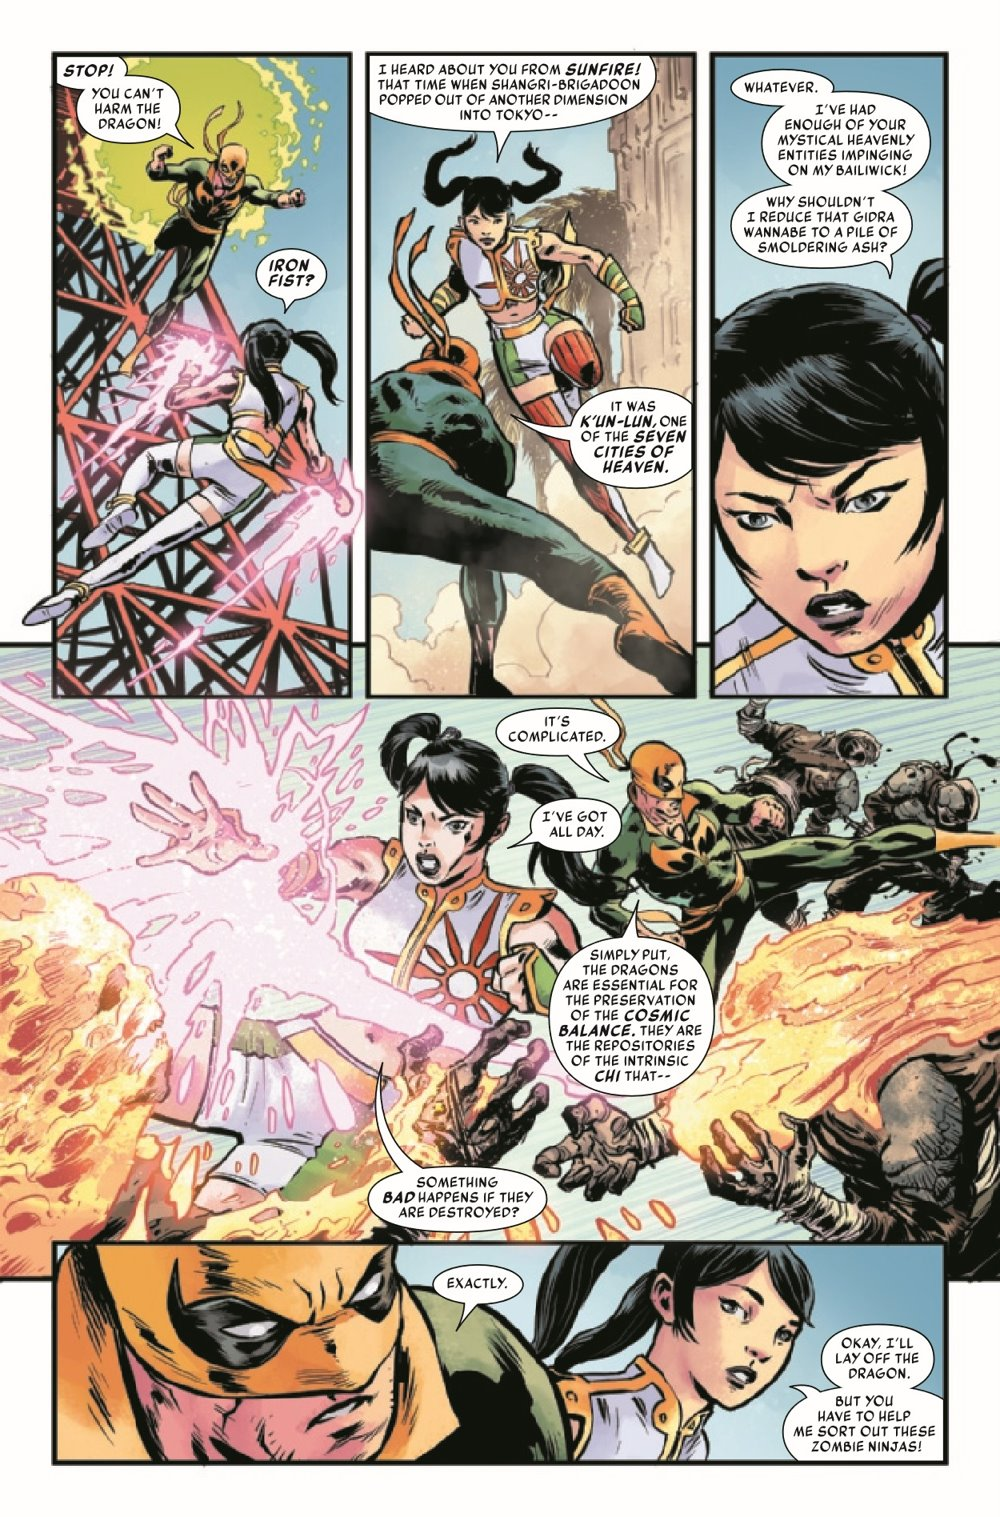 IRONFISTHOD2021003_Preview-5 ComicList Previews: IRON FIST HEART OF THE DRAGON #3 (OF 6)